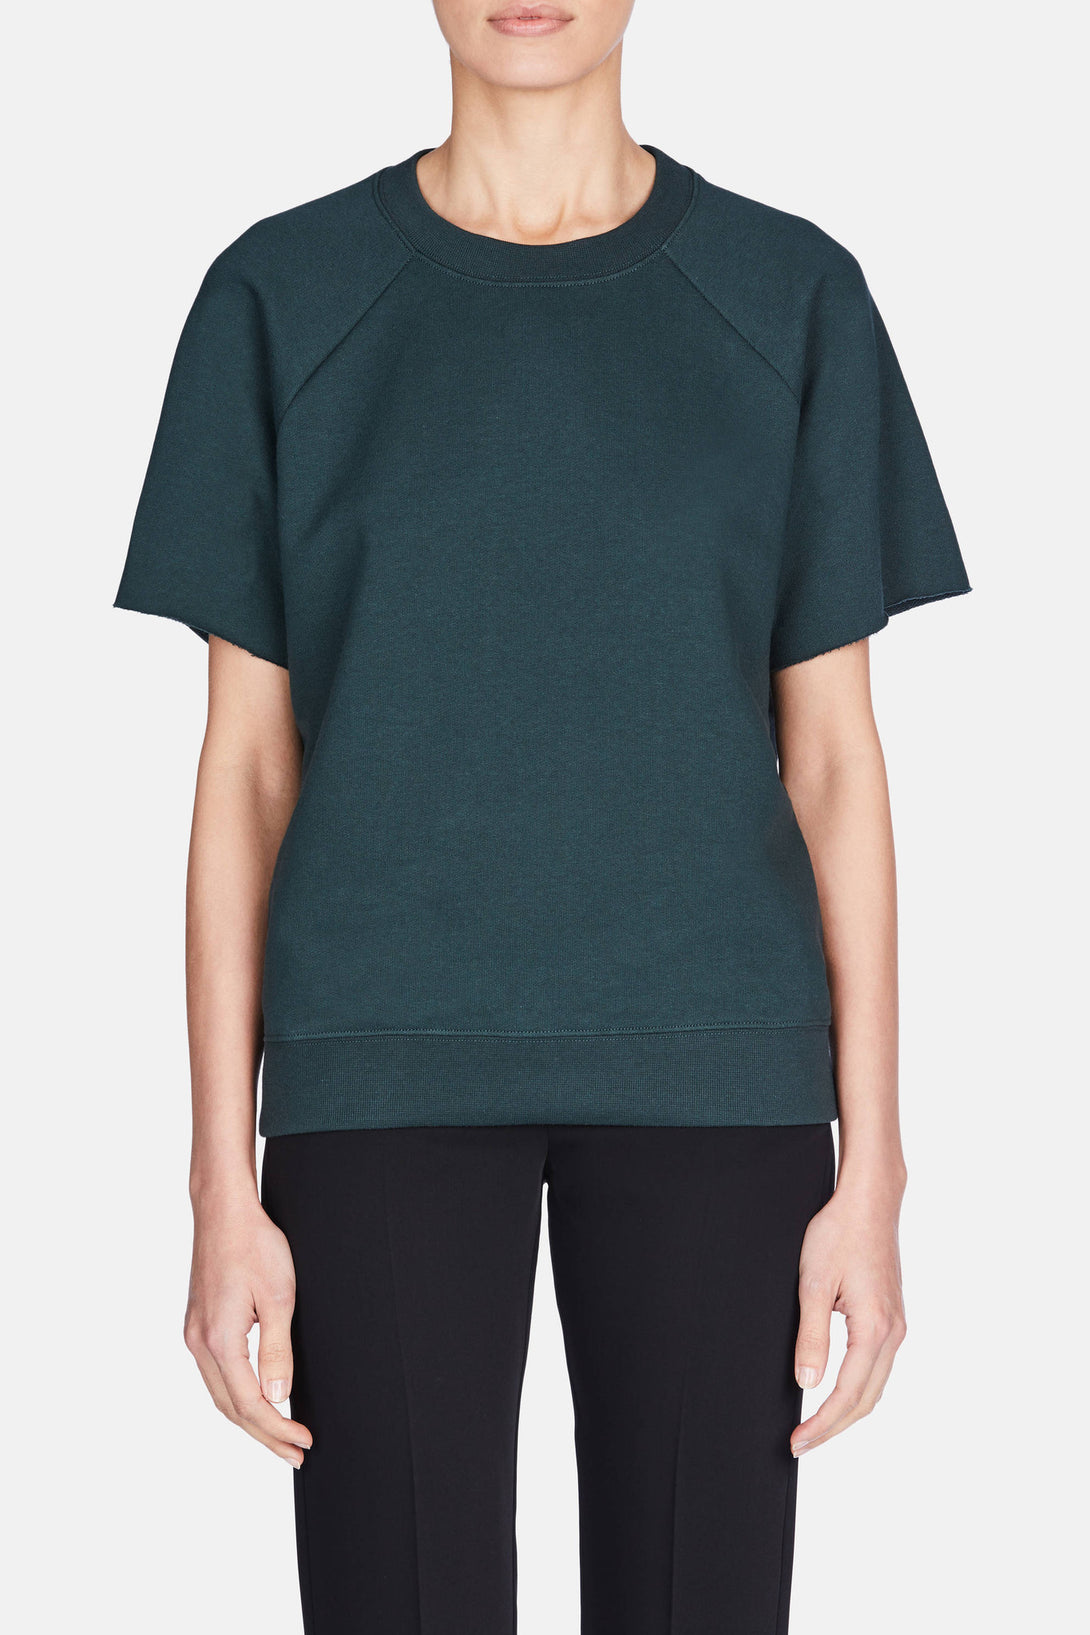 Basic Raglan Sweatshirt - Petrol Green